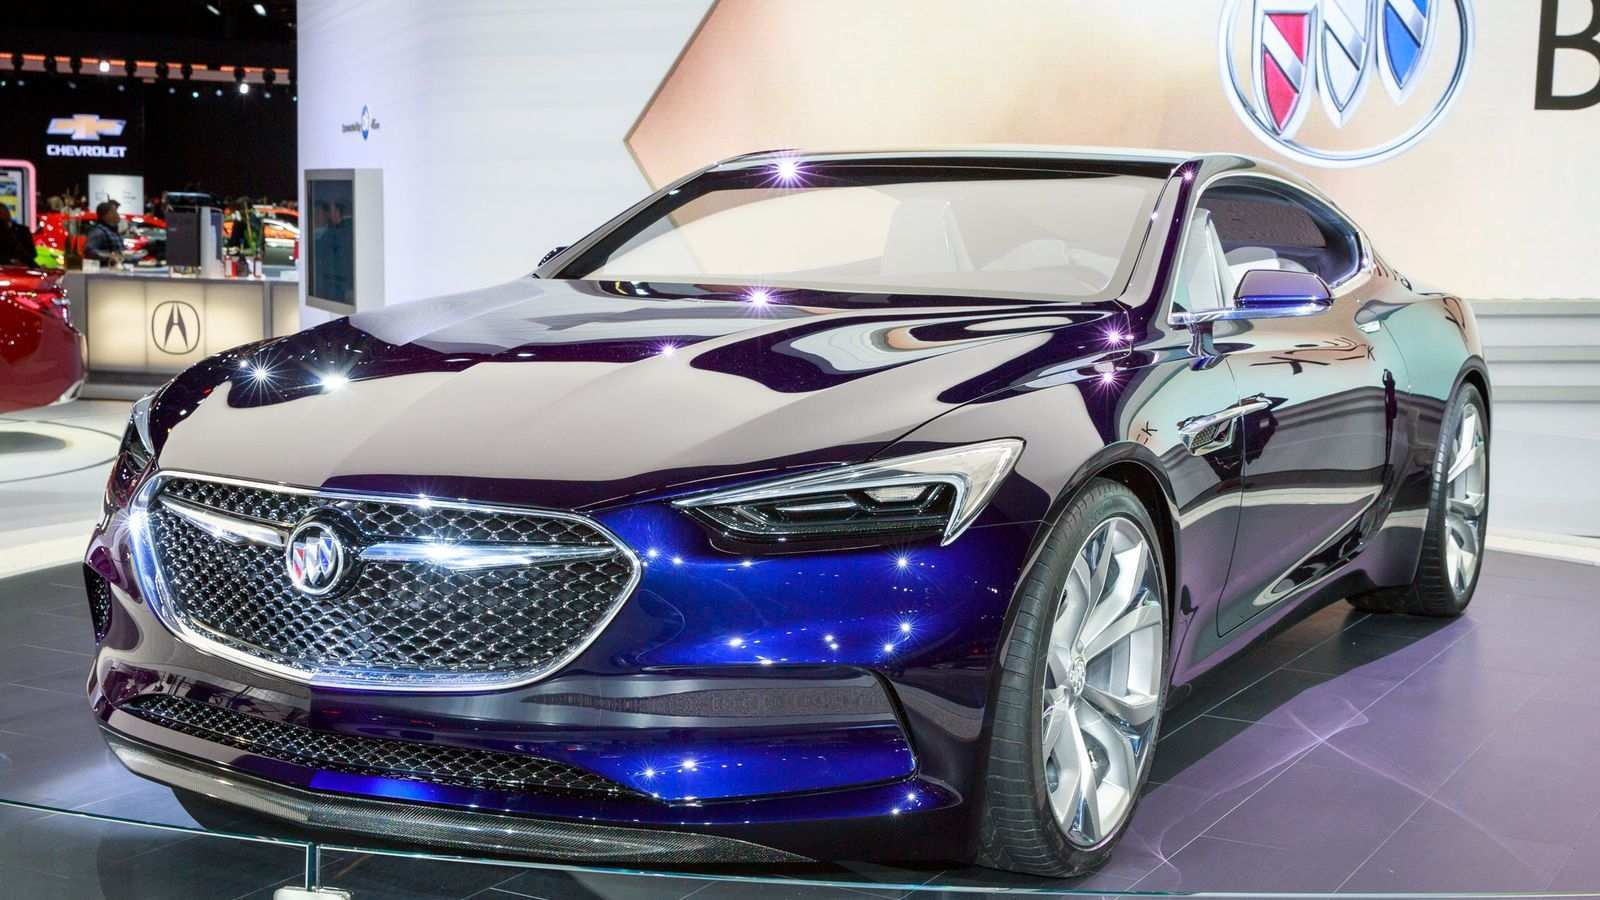 13 Gallery of Buick Concept Cars 2019 Picture Release Date And Review Research New with Buick Concept Cars 2019 Picture Release Date And Review